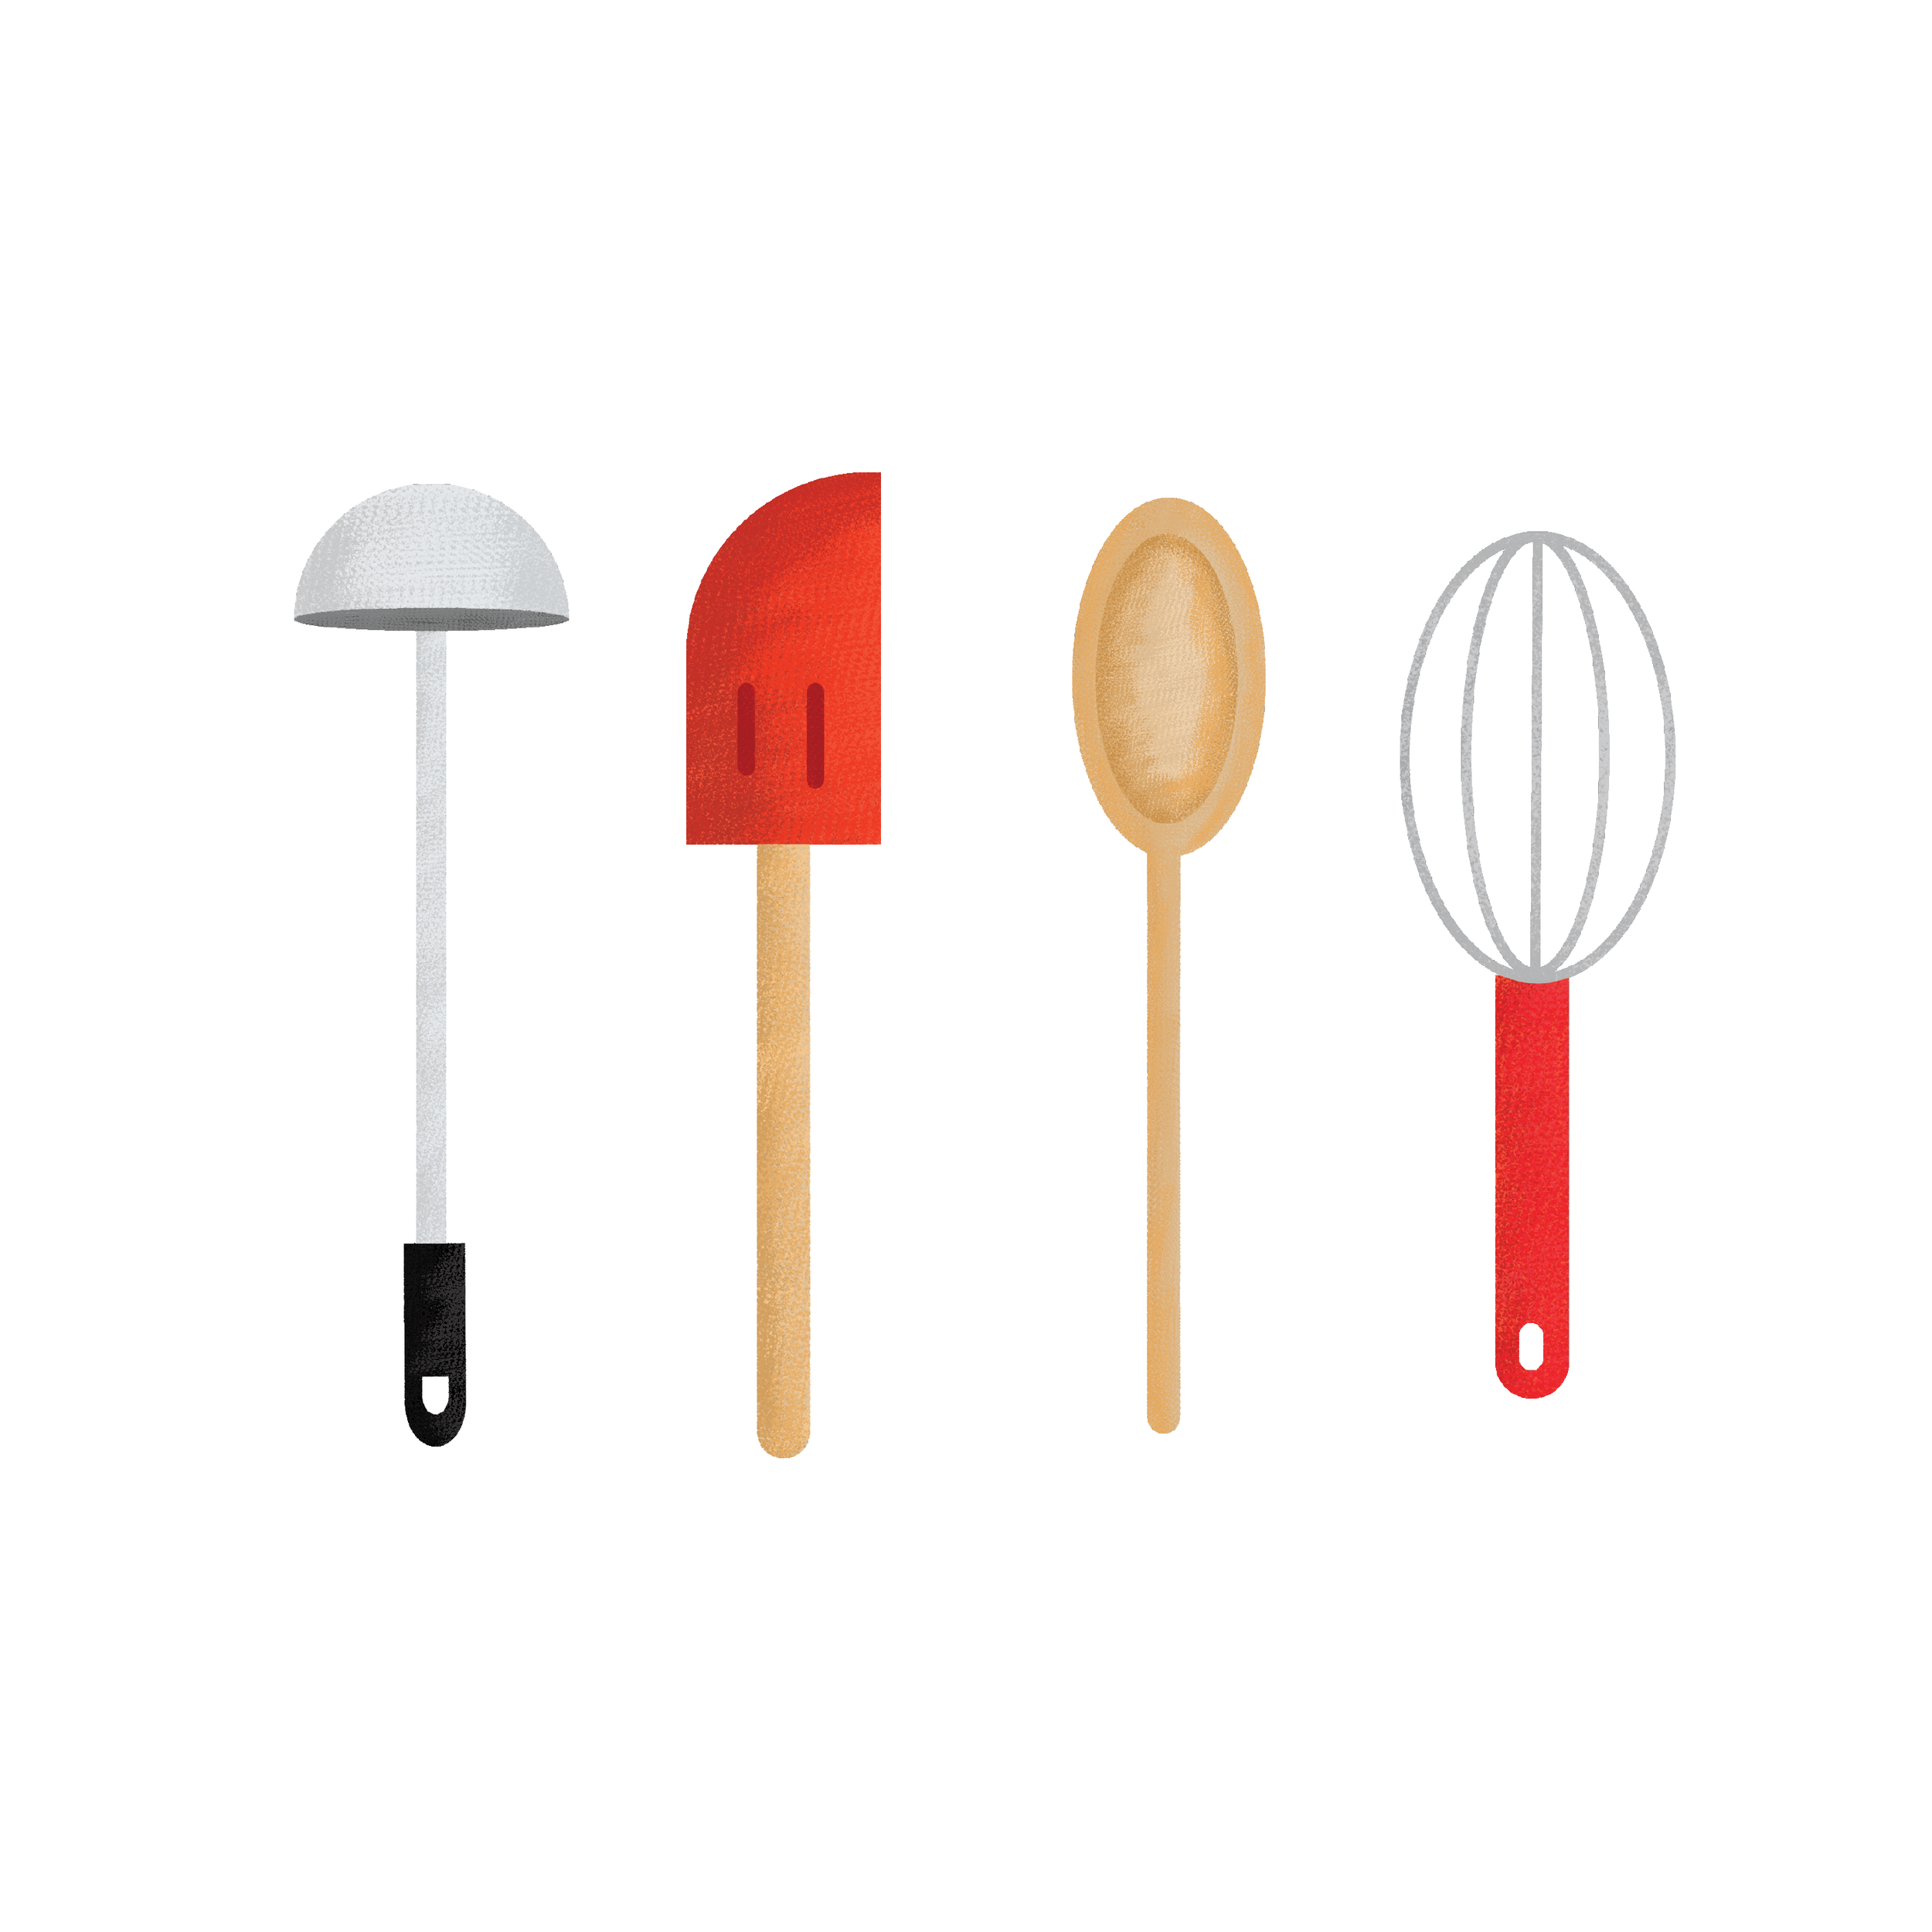 Basic_Kitchen_illustrations-02.png